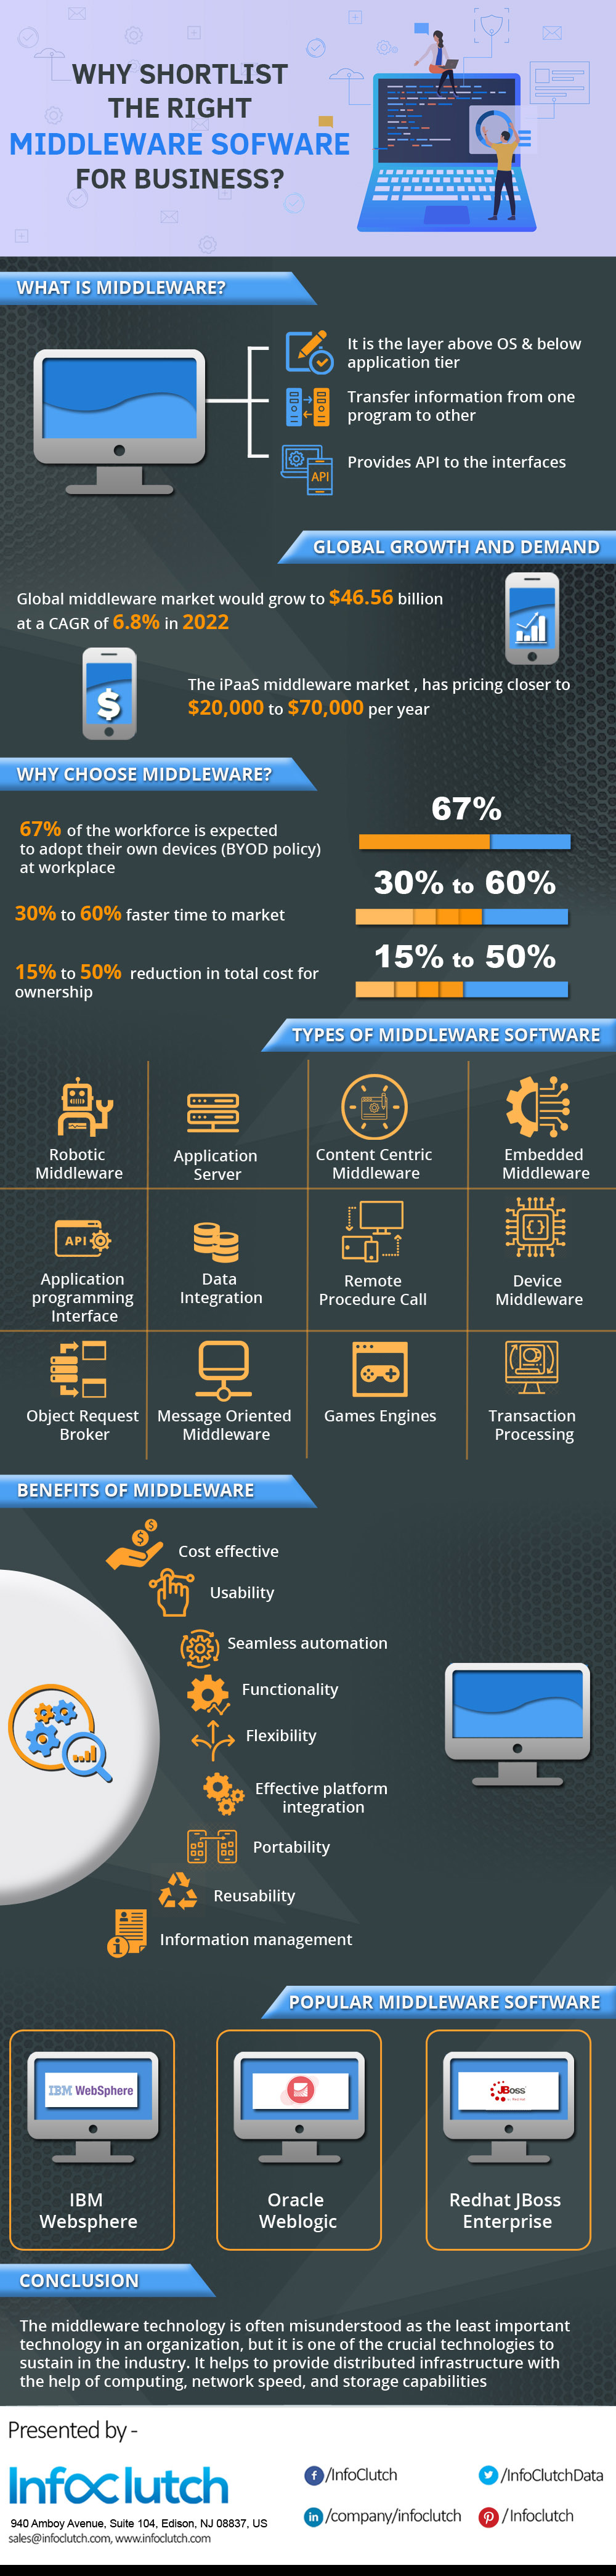 Why Shortlist the Right Middleware Software For Business?